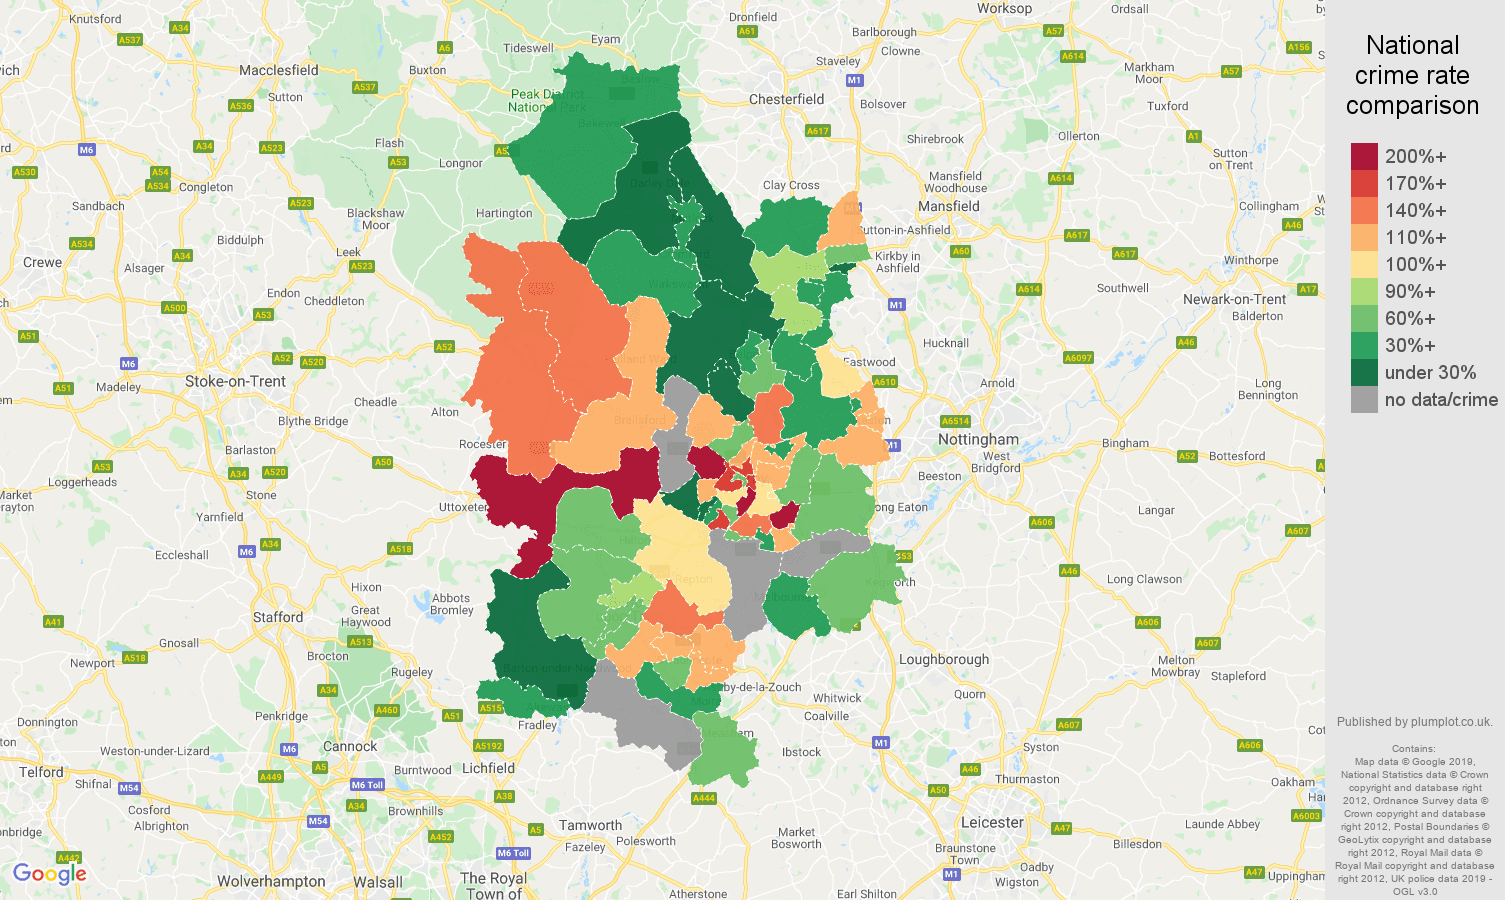 Derby other crime rate comparison map